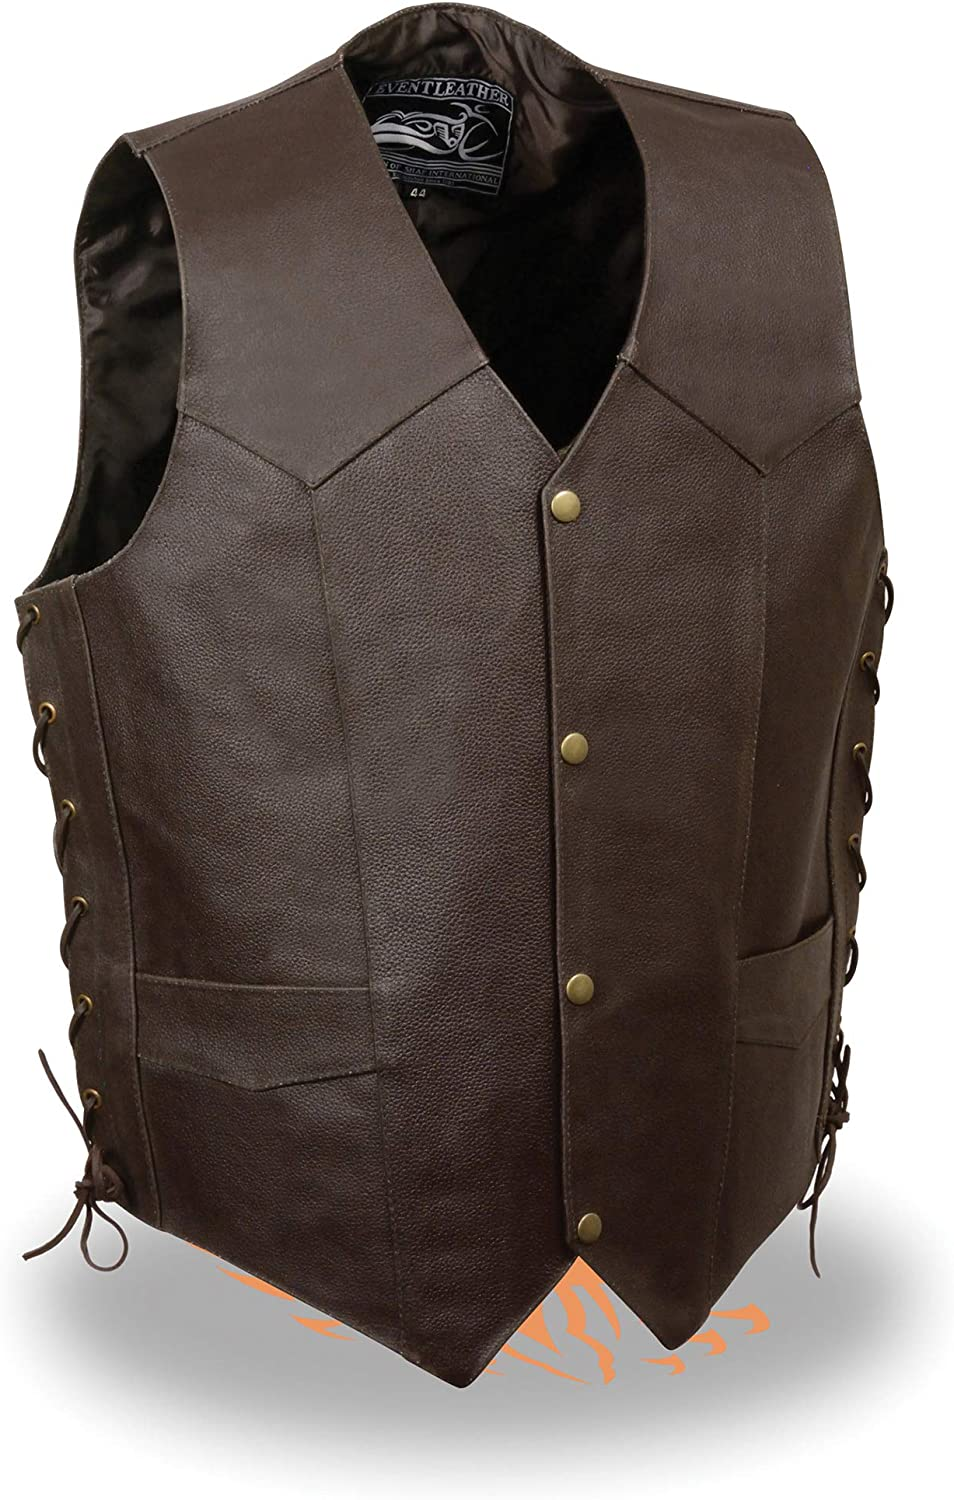 Event Leather-Mens Side Lace Live to Ride Vest w//Flying Eagle-BROWN-MD